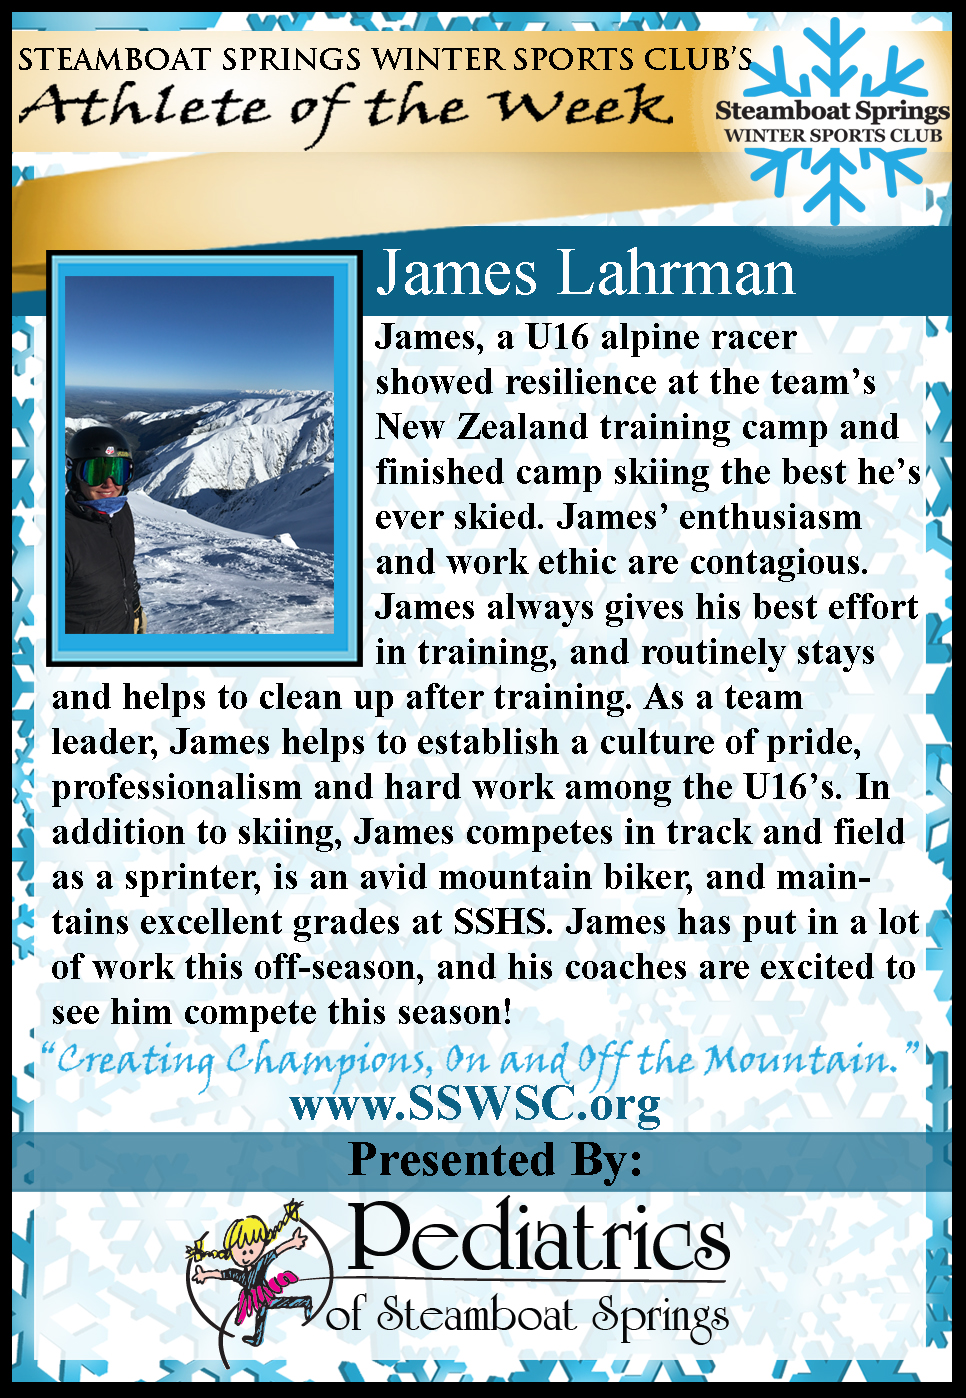 Athlete of the Week James Lahrman